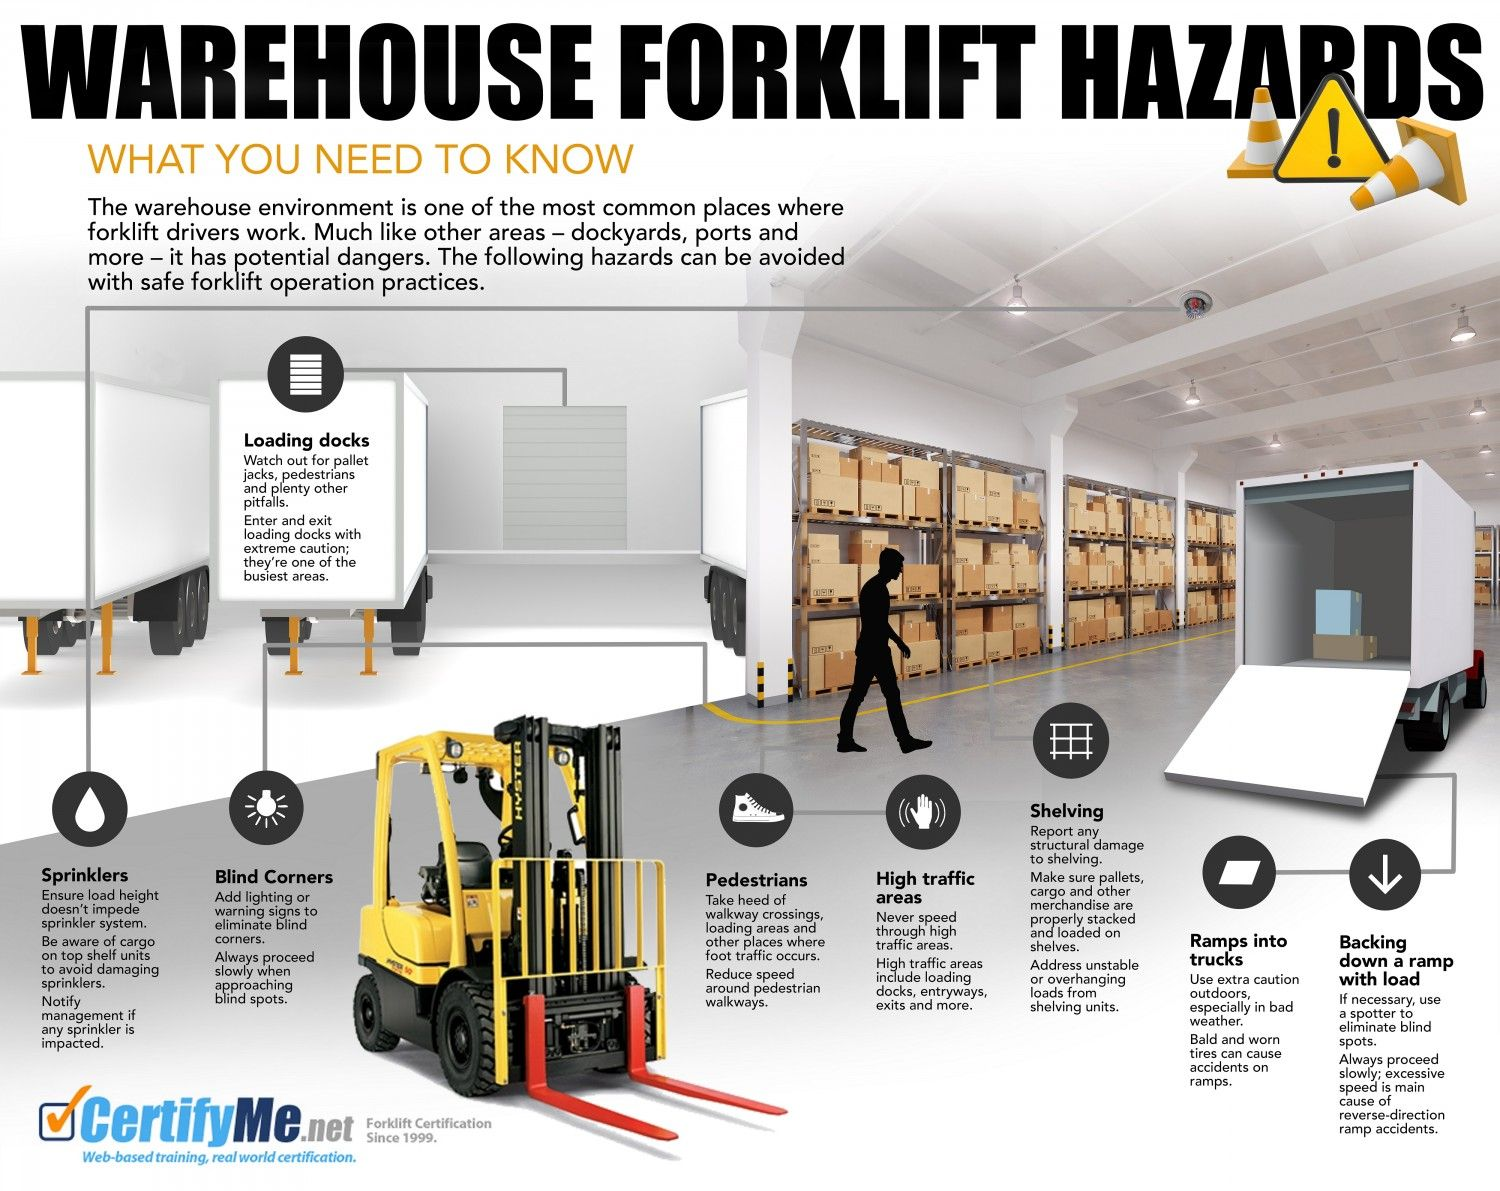 Warehouse Forklift Hazards Infographic Safety training